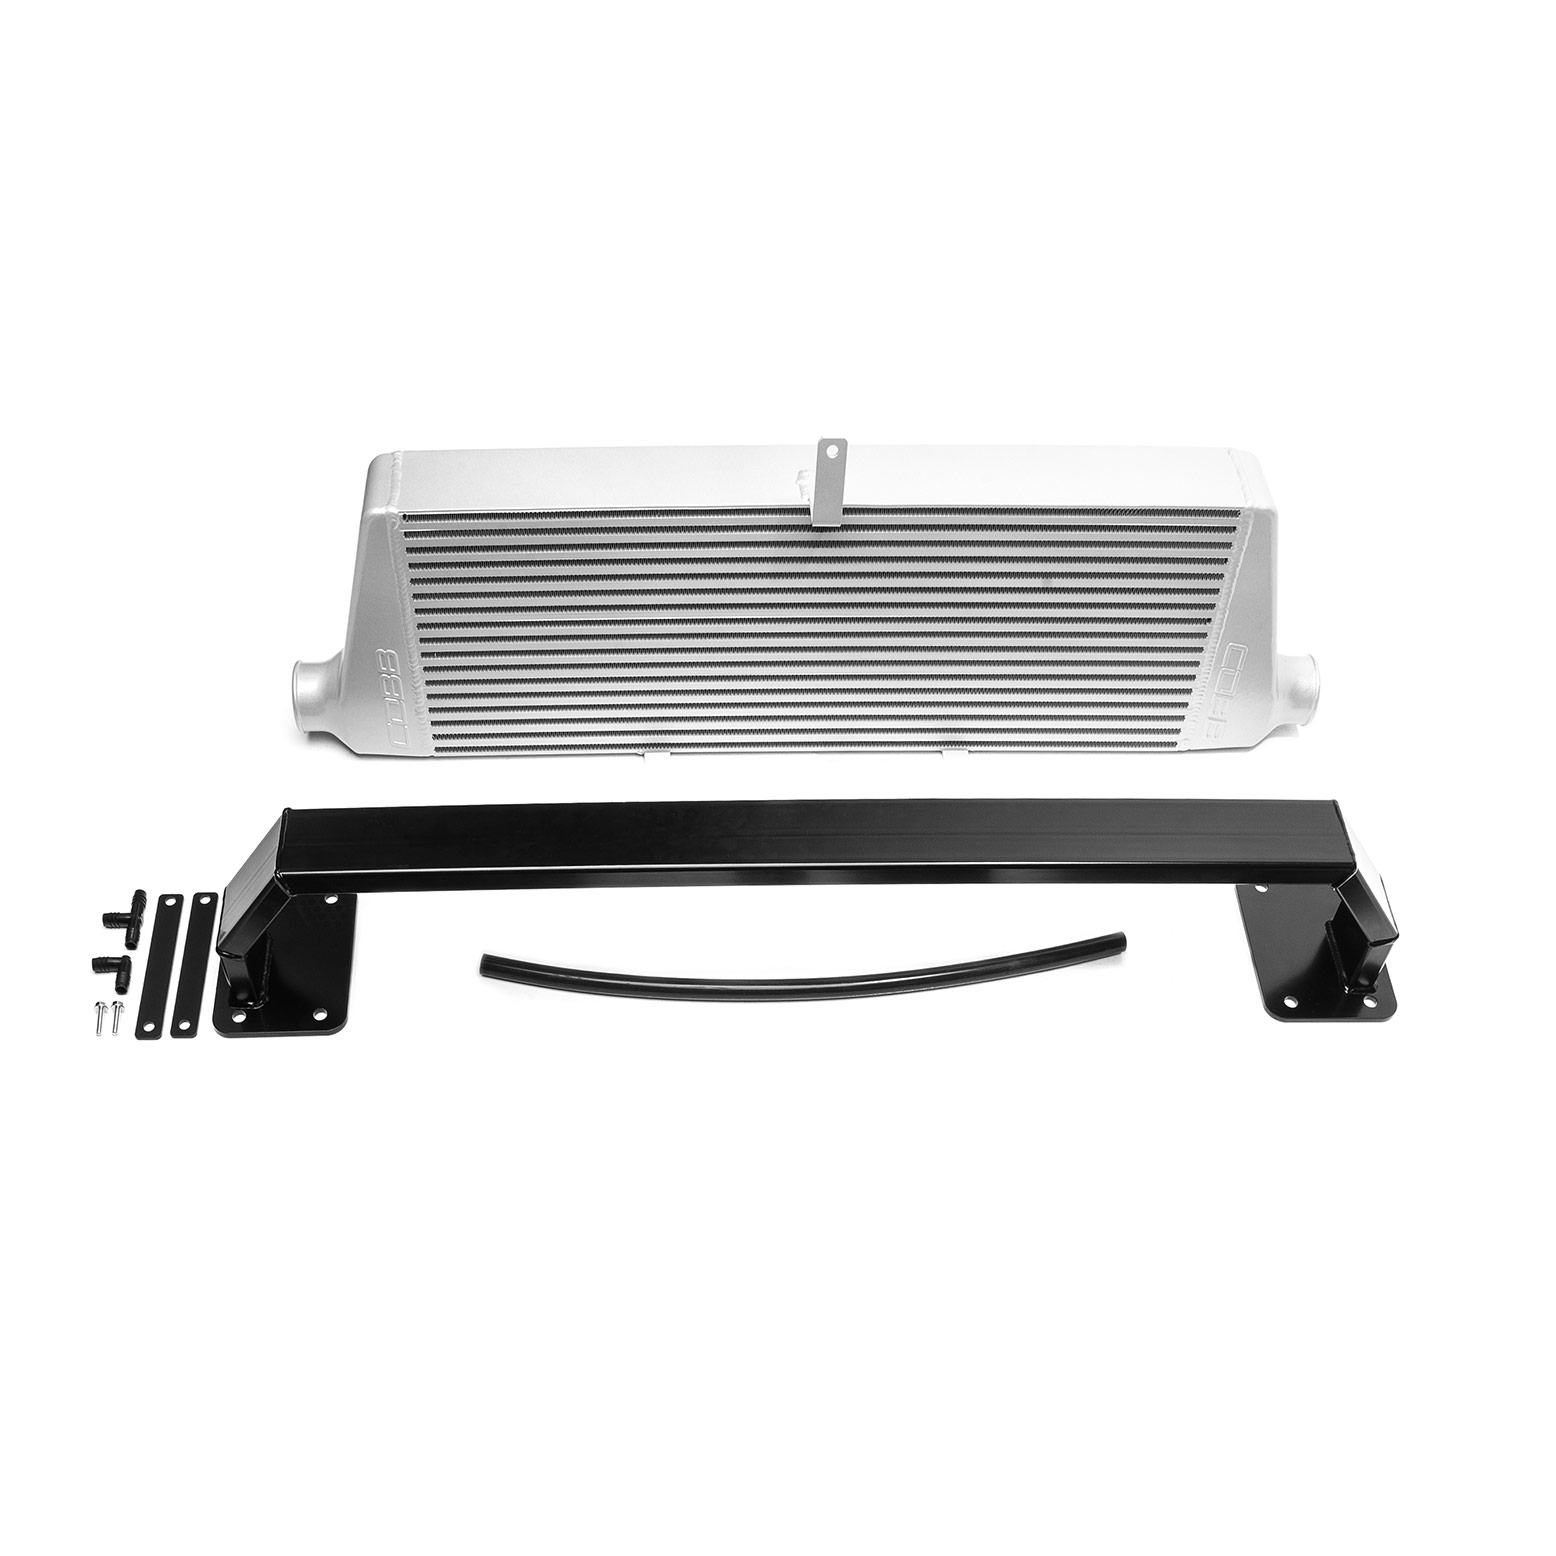 Subaru Front Mount Intercooler Kit (Silver) WRX 2011-2014